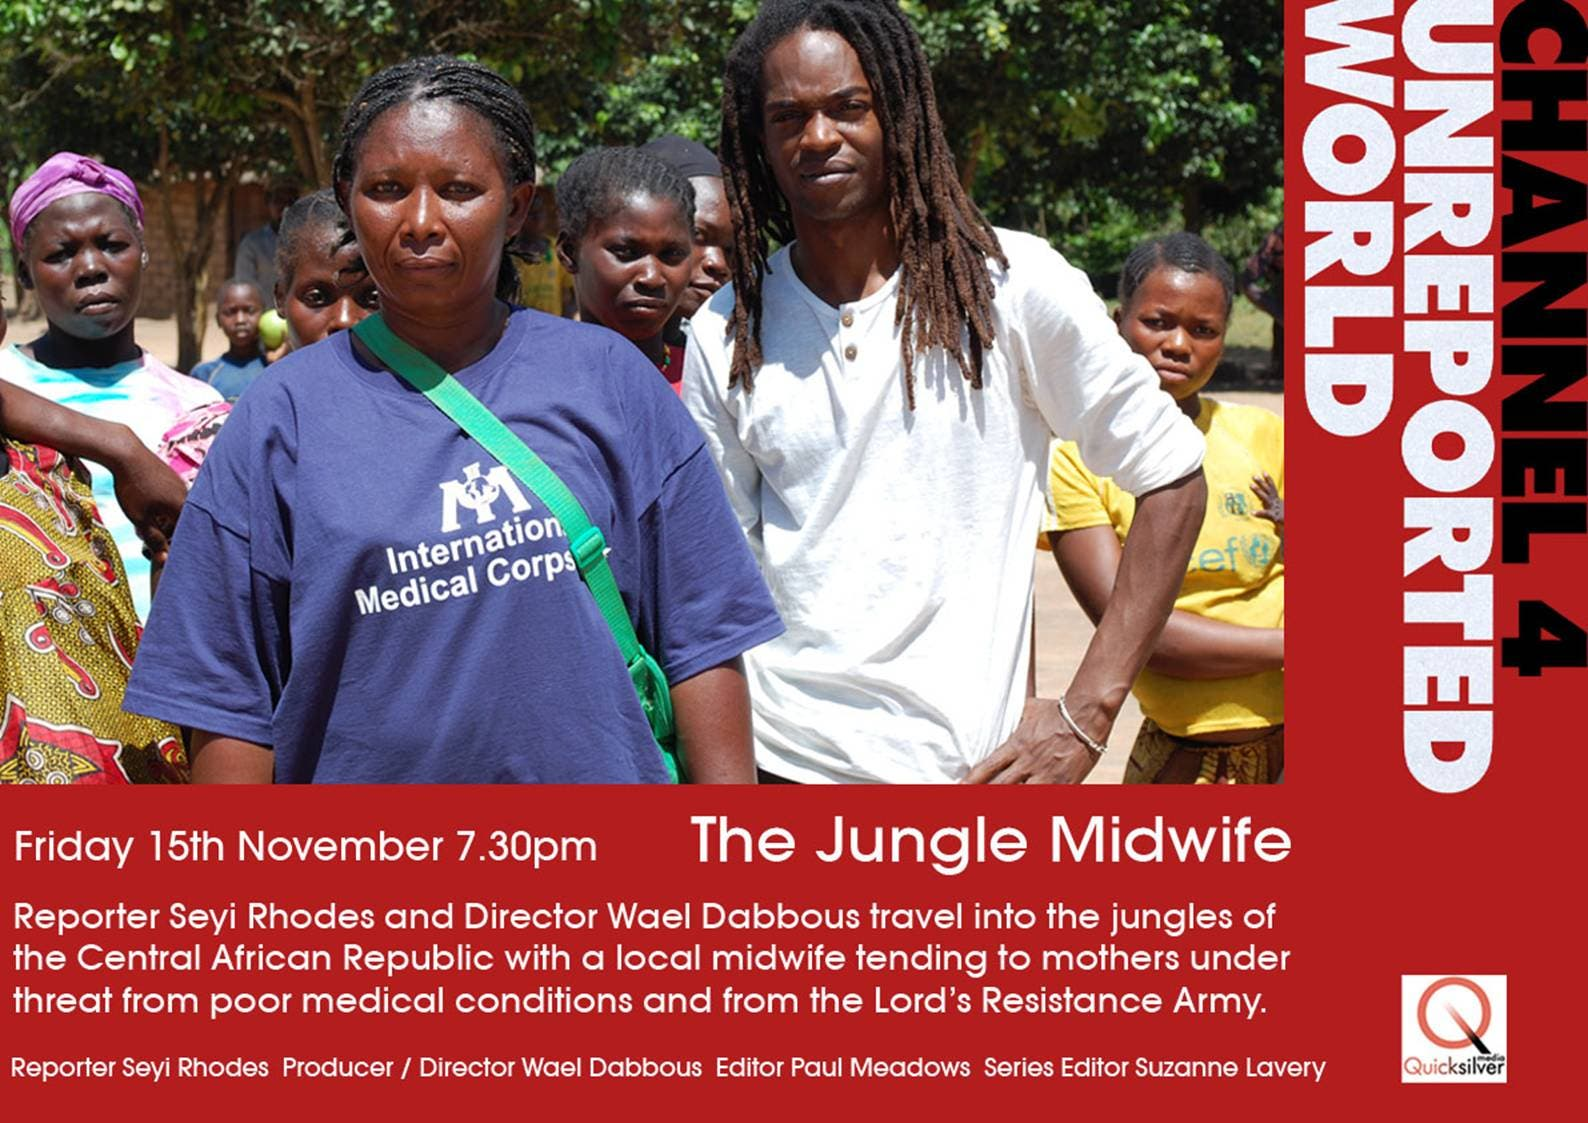 Olga Yetikoua: The Jungle Midwife with the breath of life, as seen on Channel 4's Unreported World